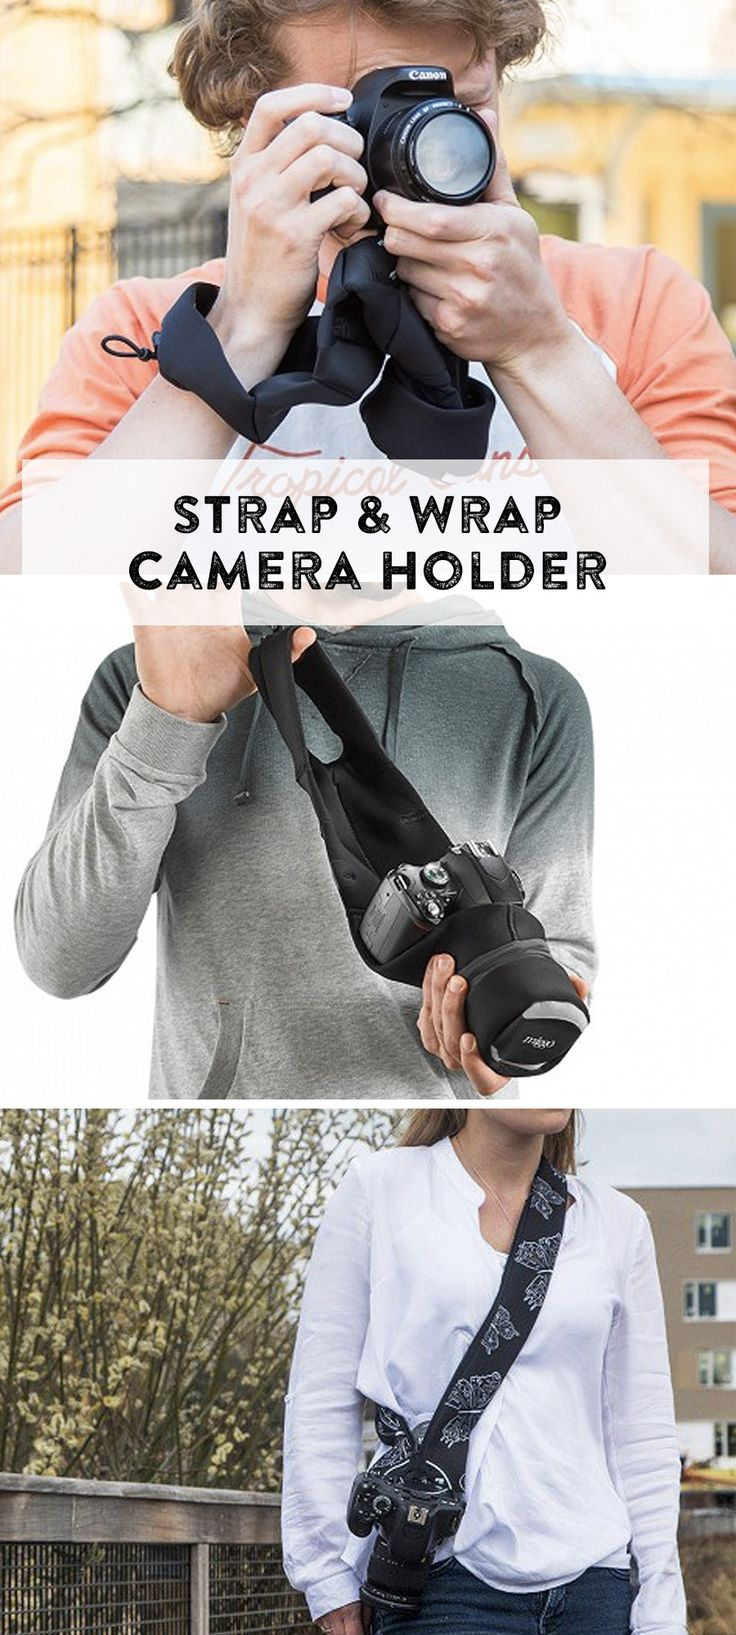 These camera straps double as cushiony wraps to keep your camera protected. Pop small to mid-sized DSLR in a day bag, and leave the bulky camera bag behind. The neck strap version can be worn cross-body while keeping your camera secure.